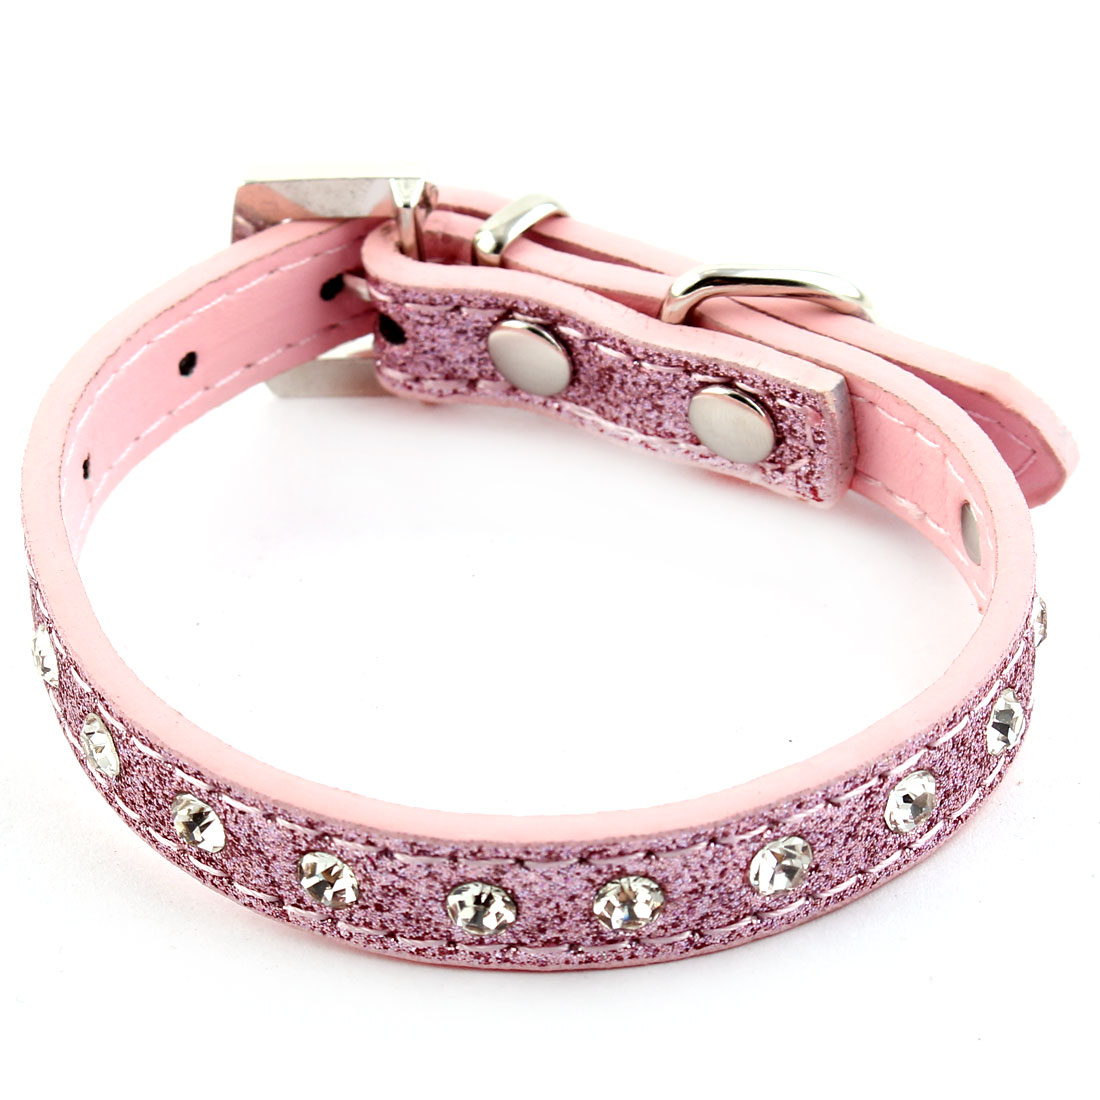 Faux Rhinestones Inlaid Pendant Ring Adjustable Pet Dog Cat Collar Strap Pink XS